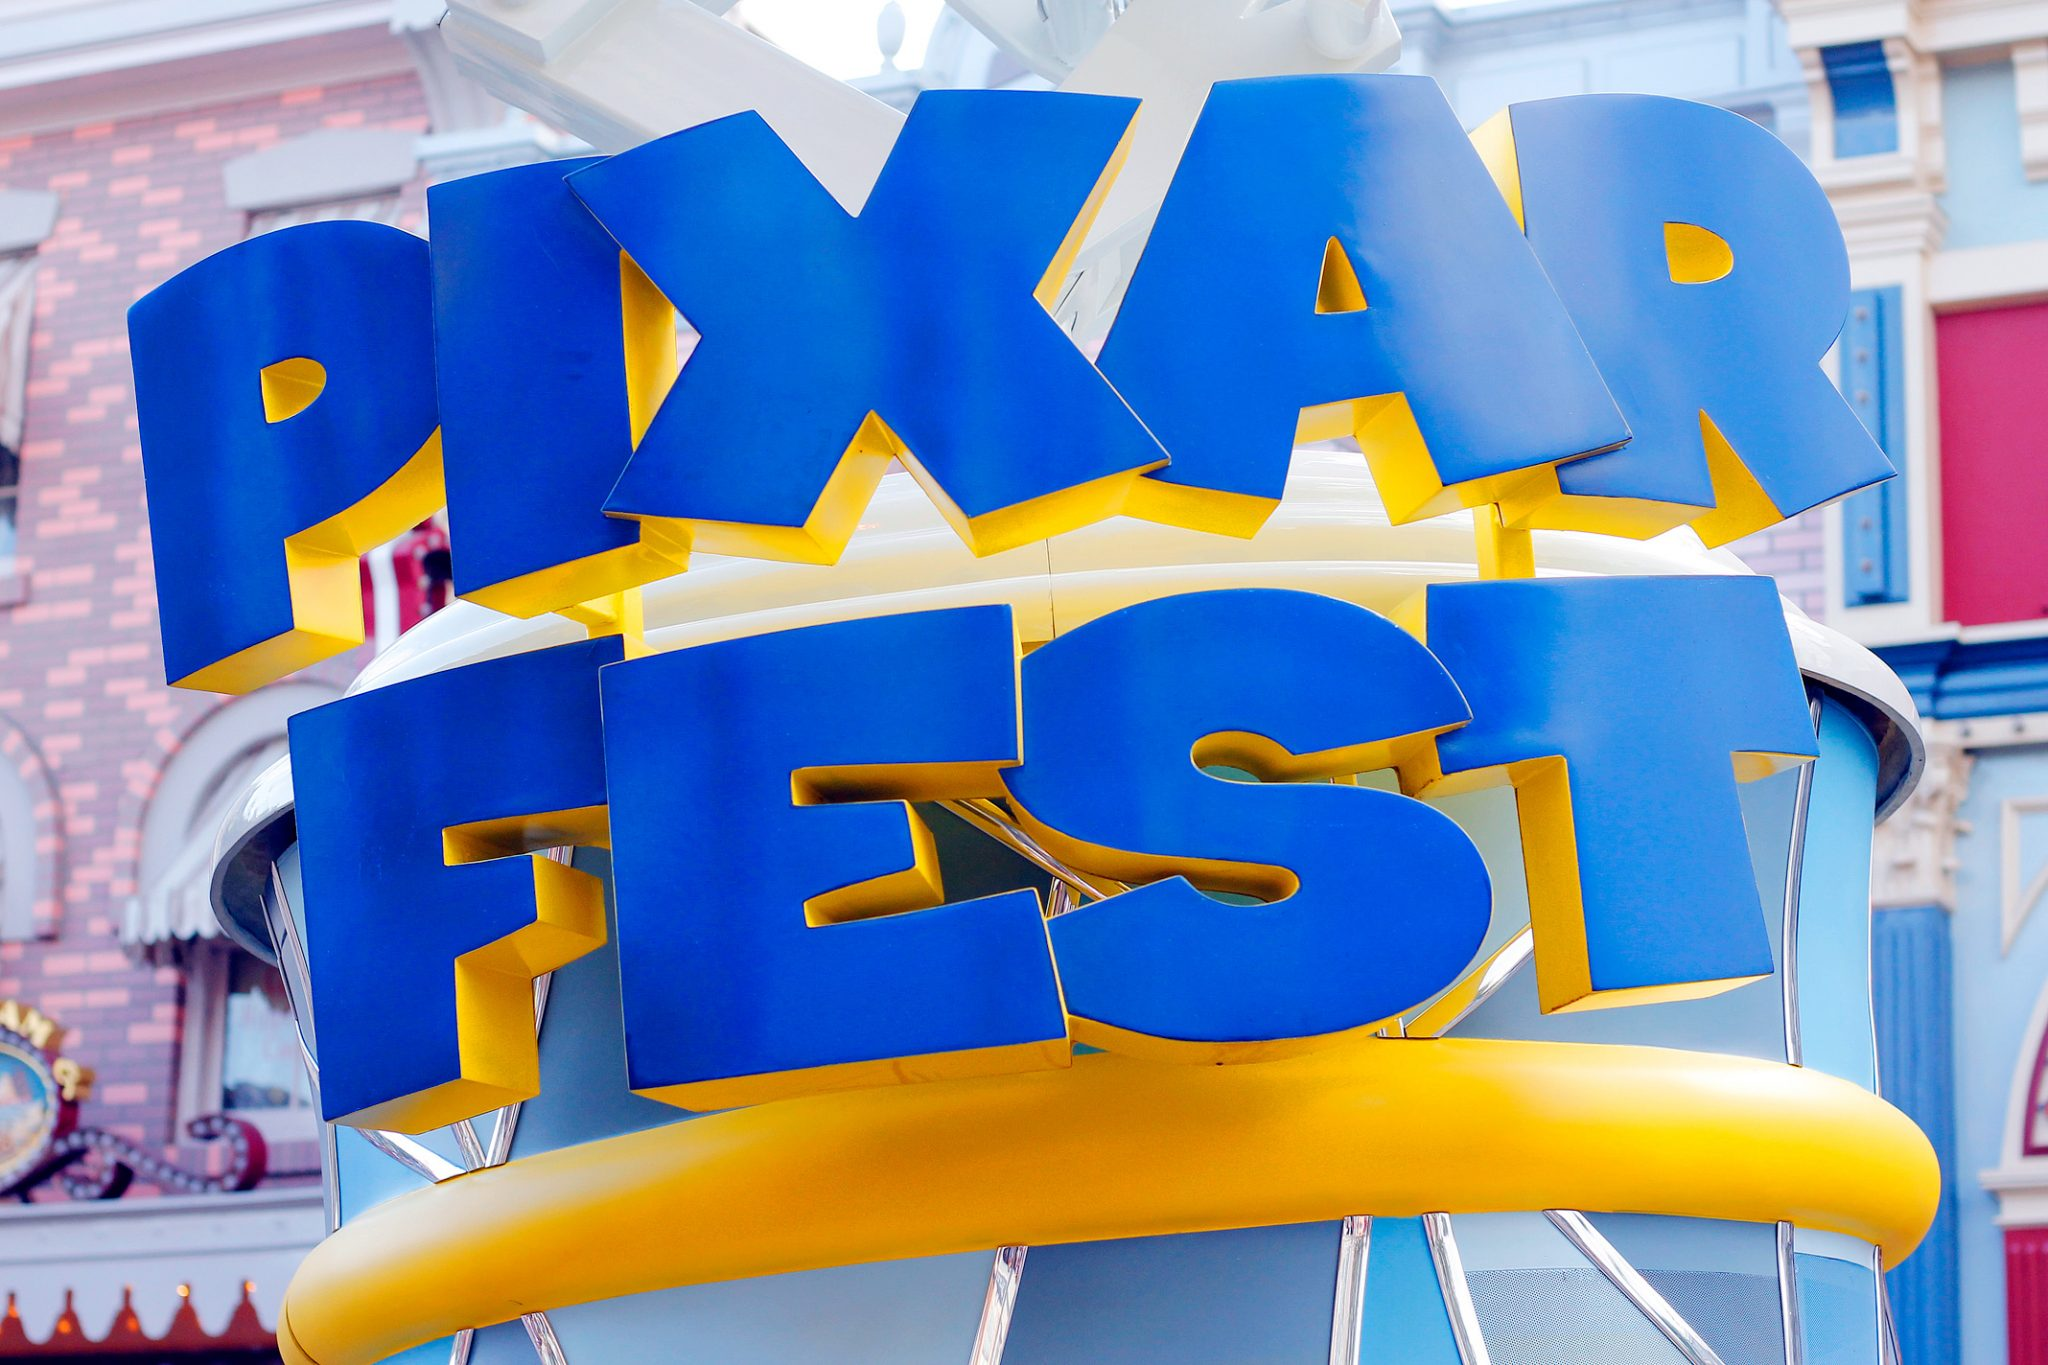 Pixar Fest at Disneyland is an exciting special event!